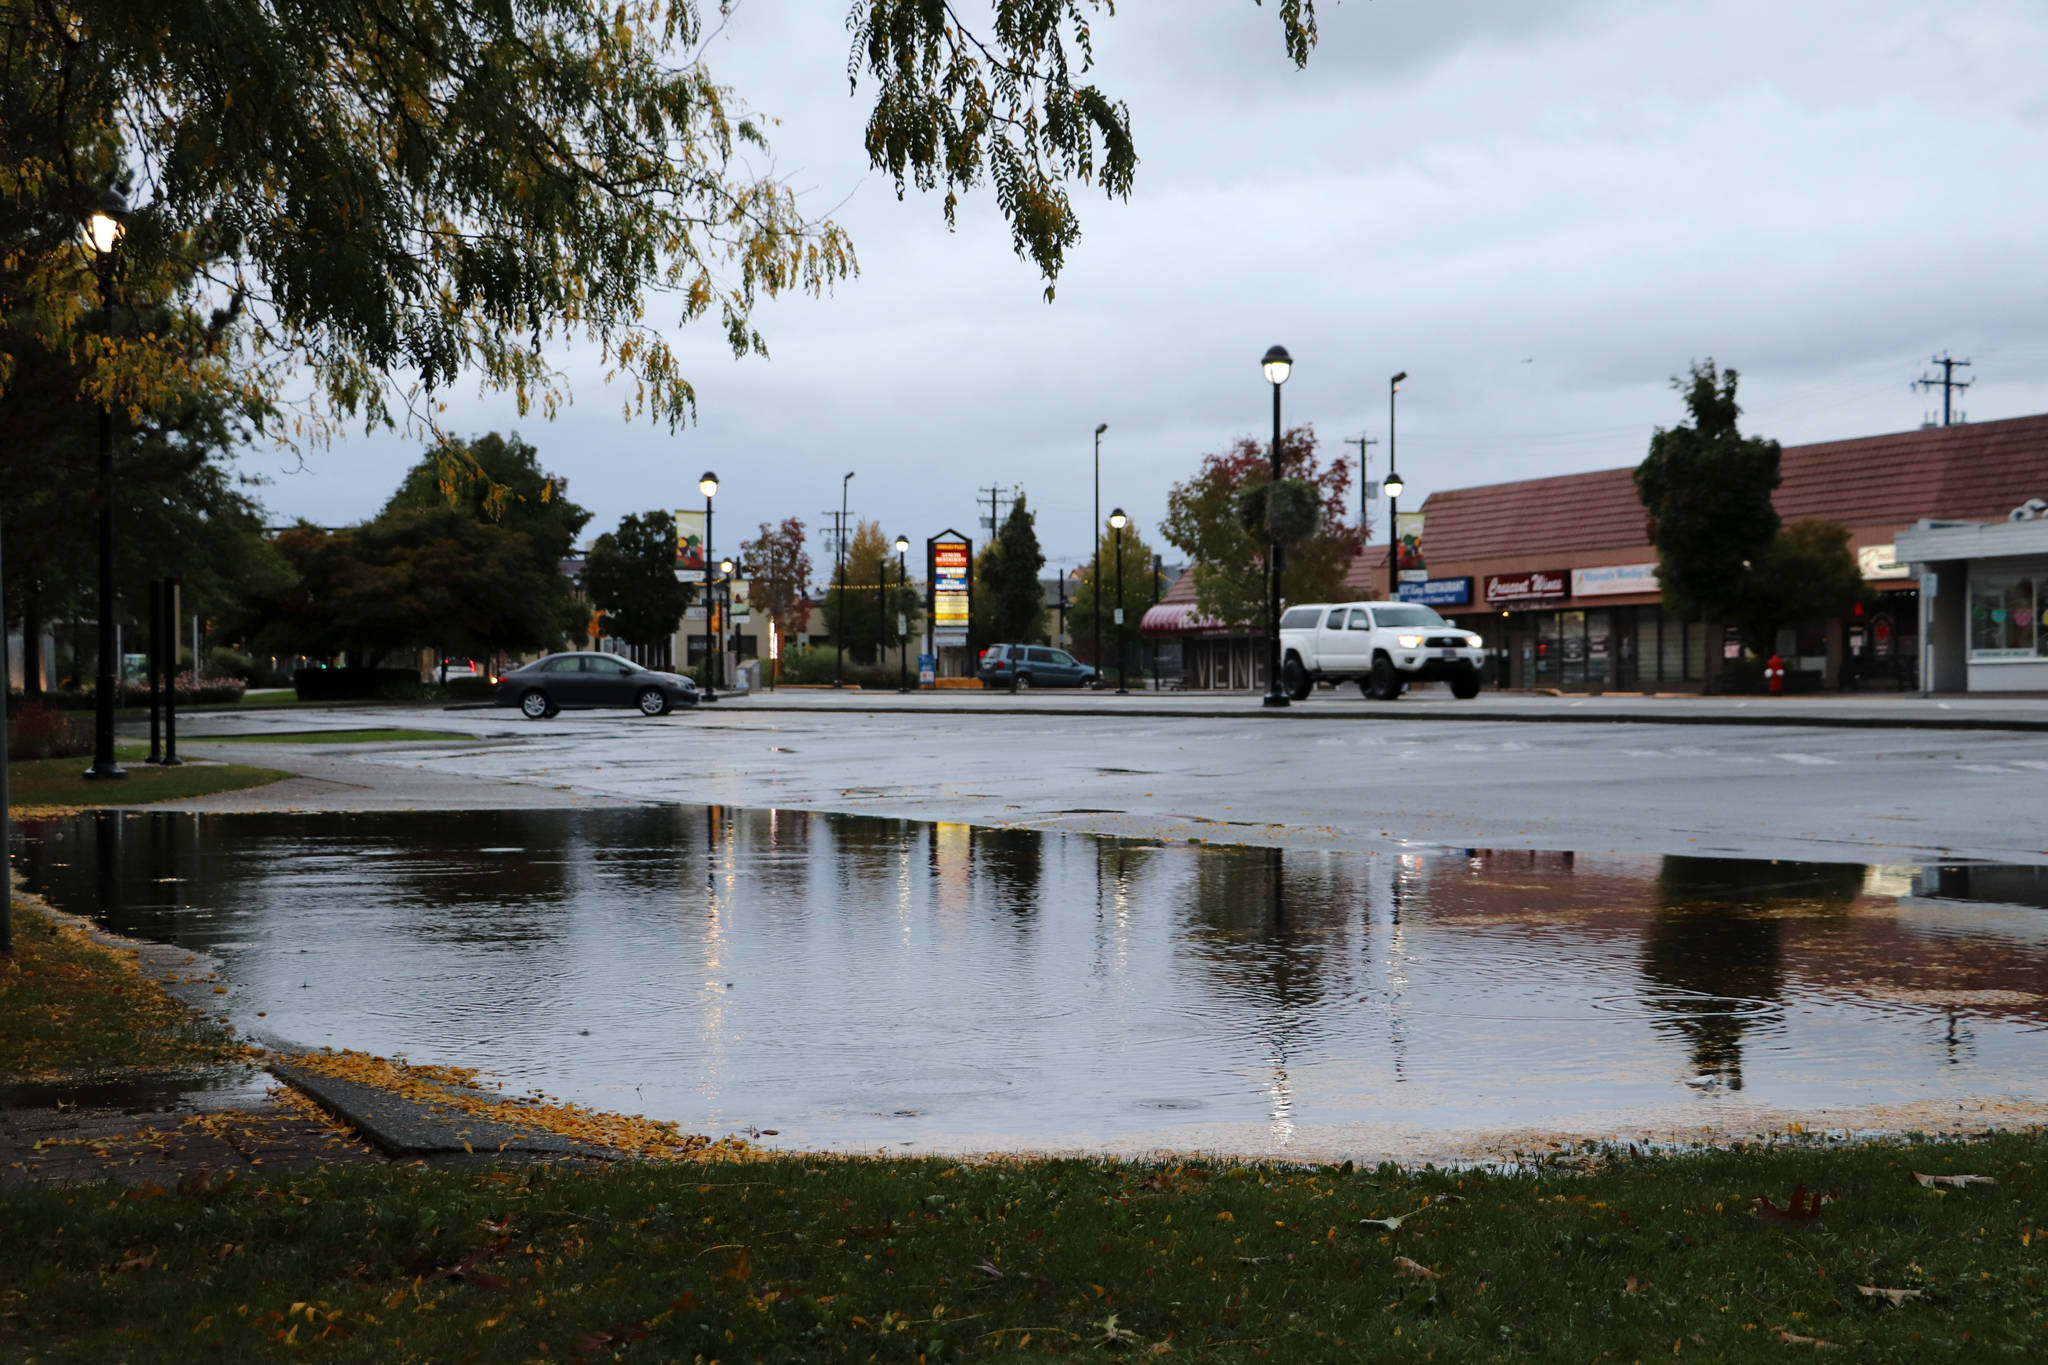 The first storm of the fall season moves through Langley on Sept. 24, 2020. (Joti Grewal/Langley Advance Times)